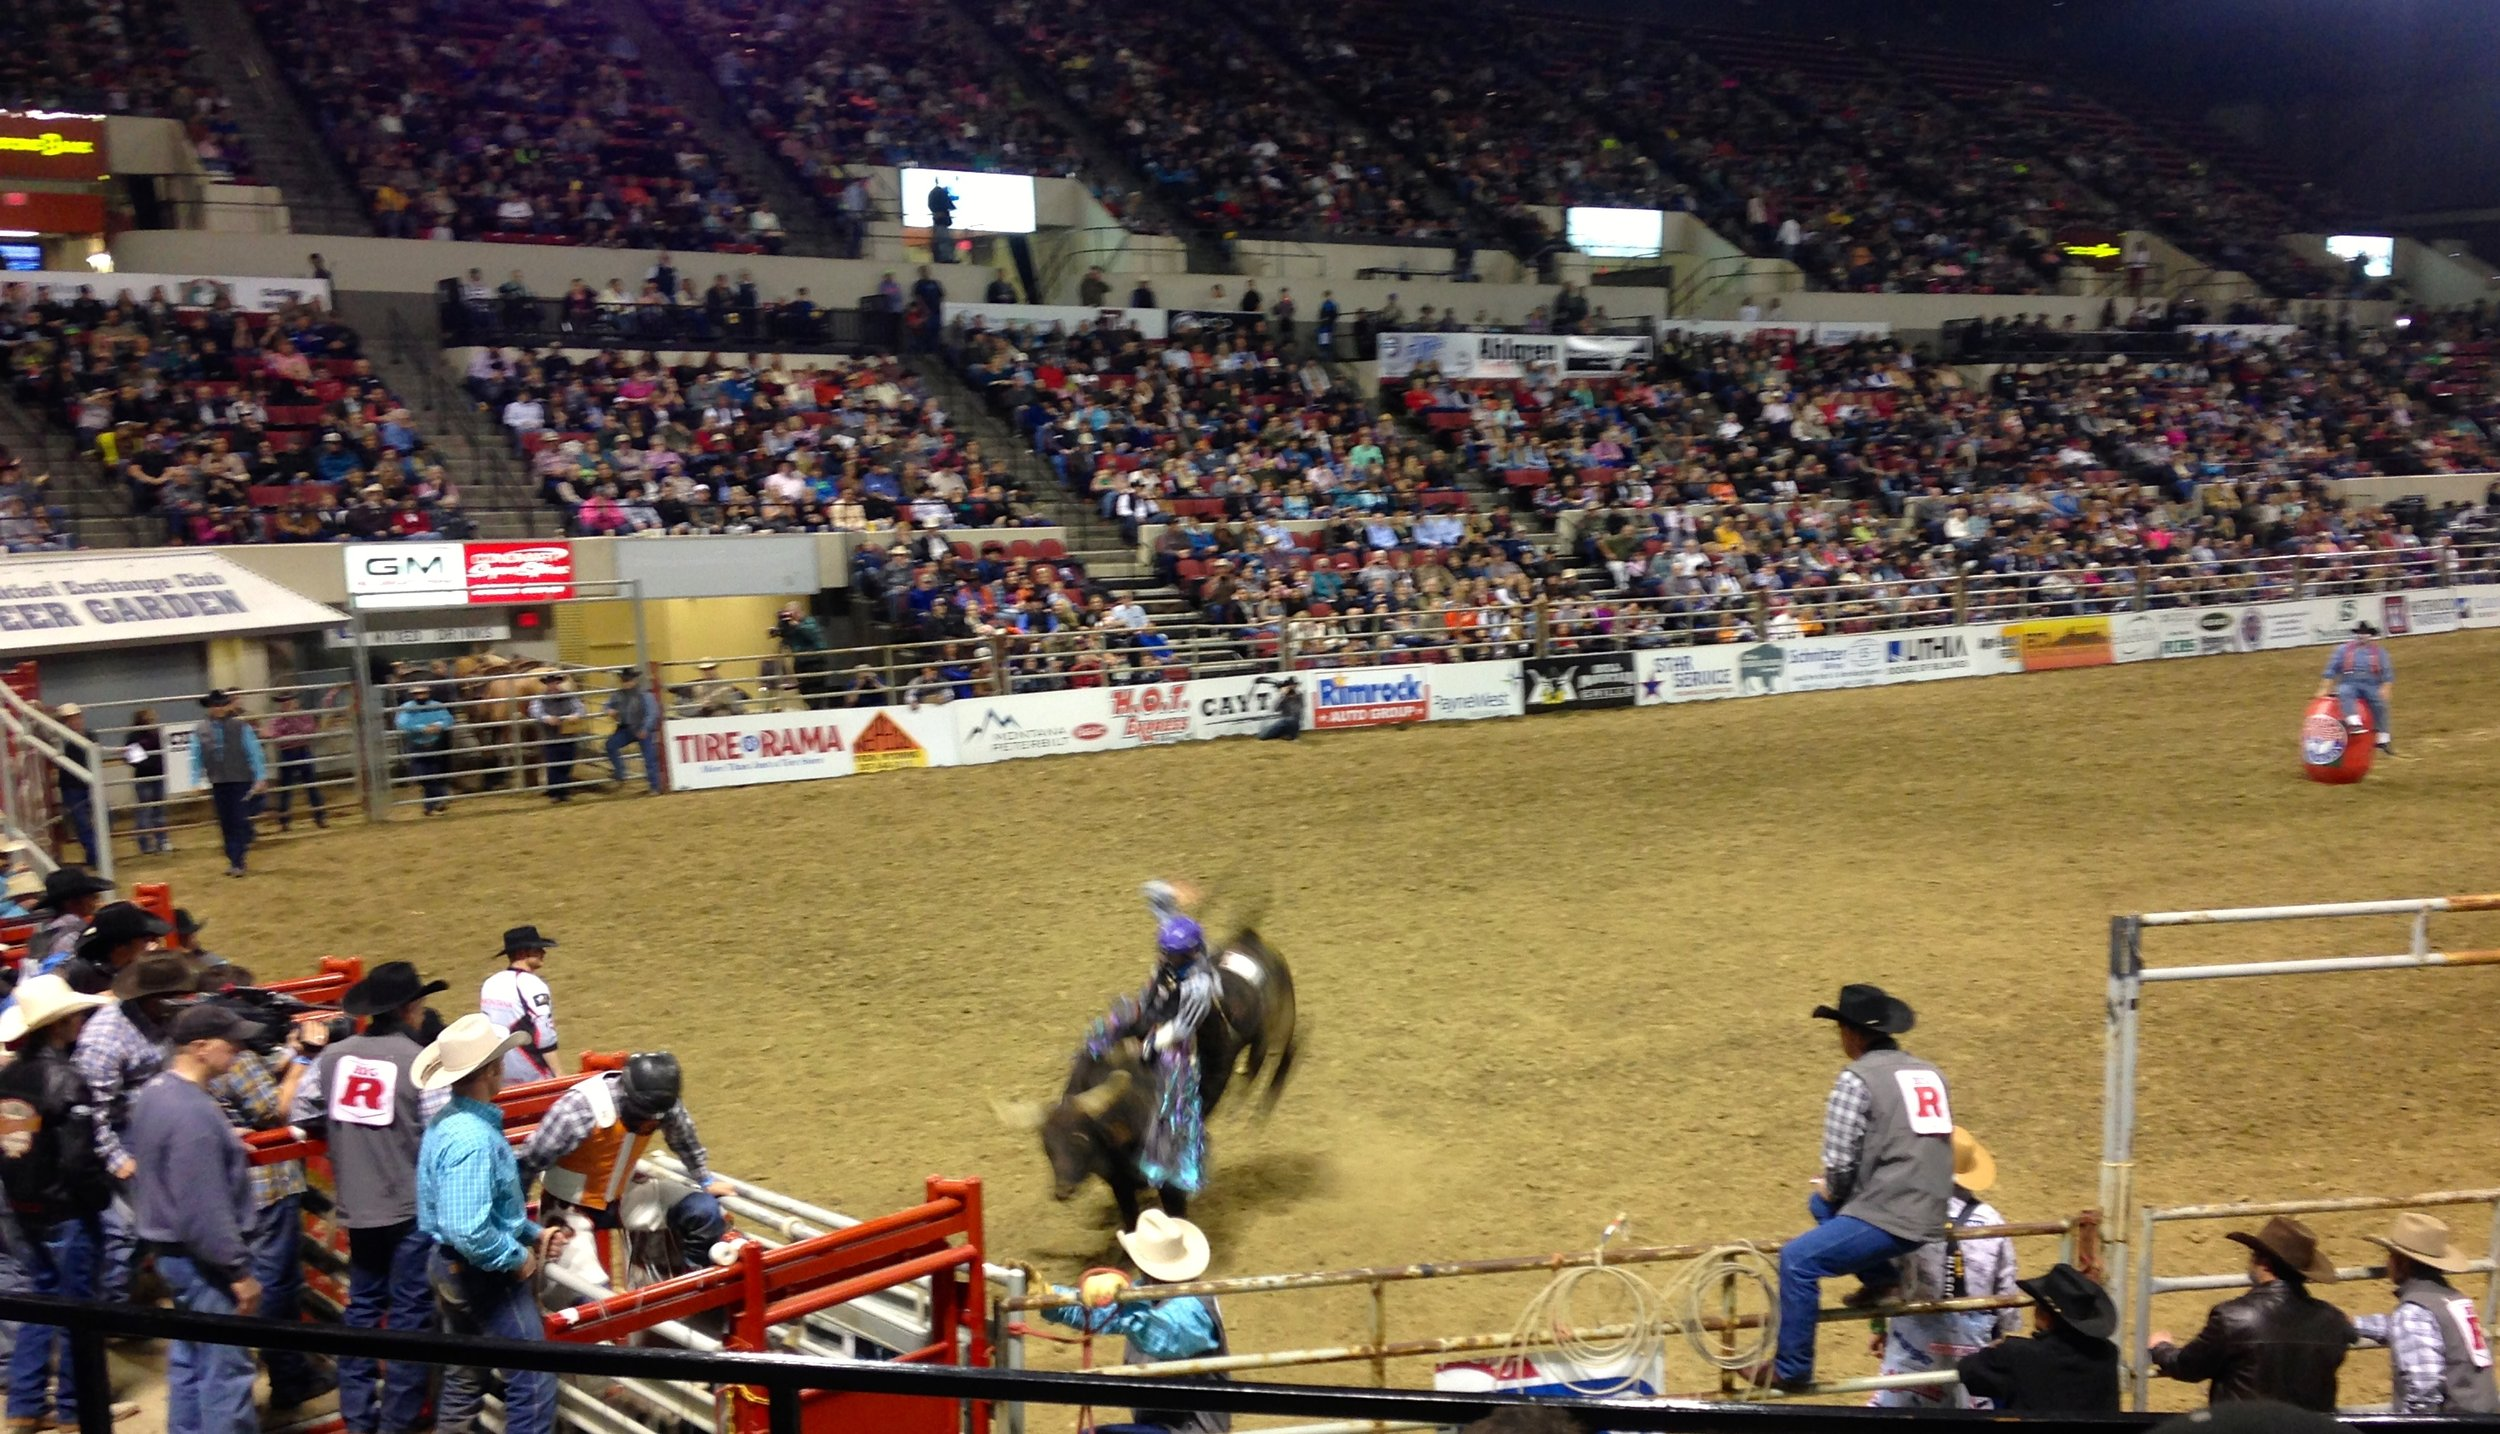 Twenty of the BEST bull riders in the world...